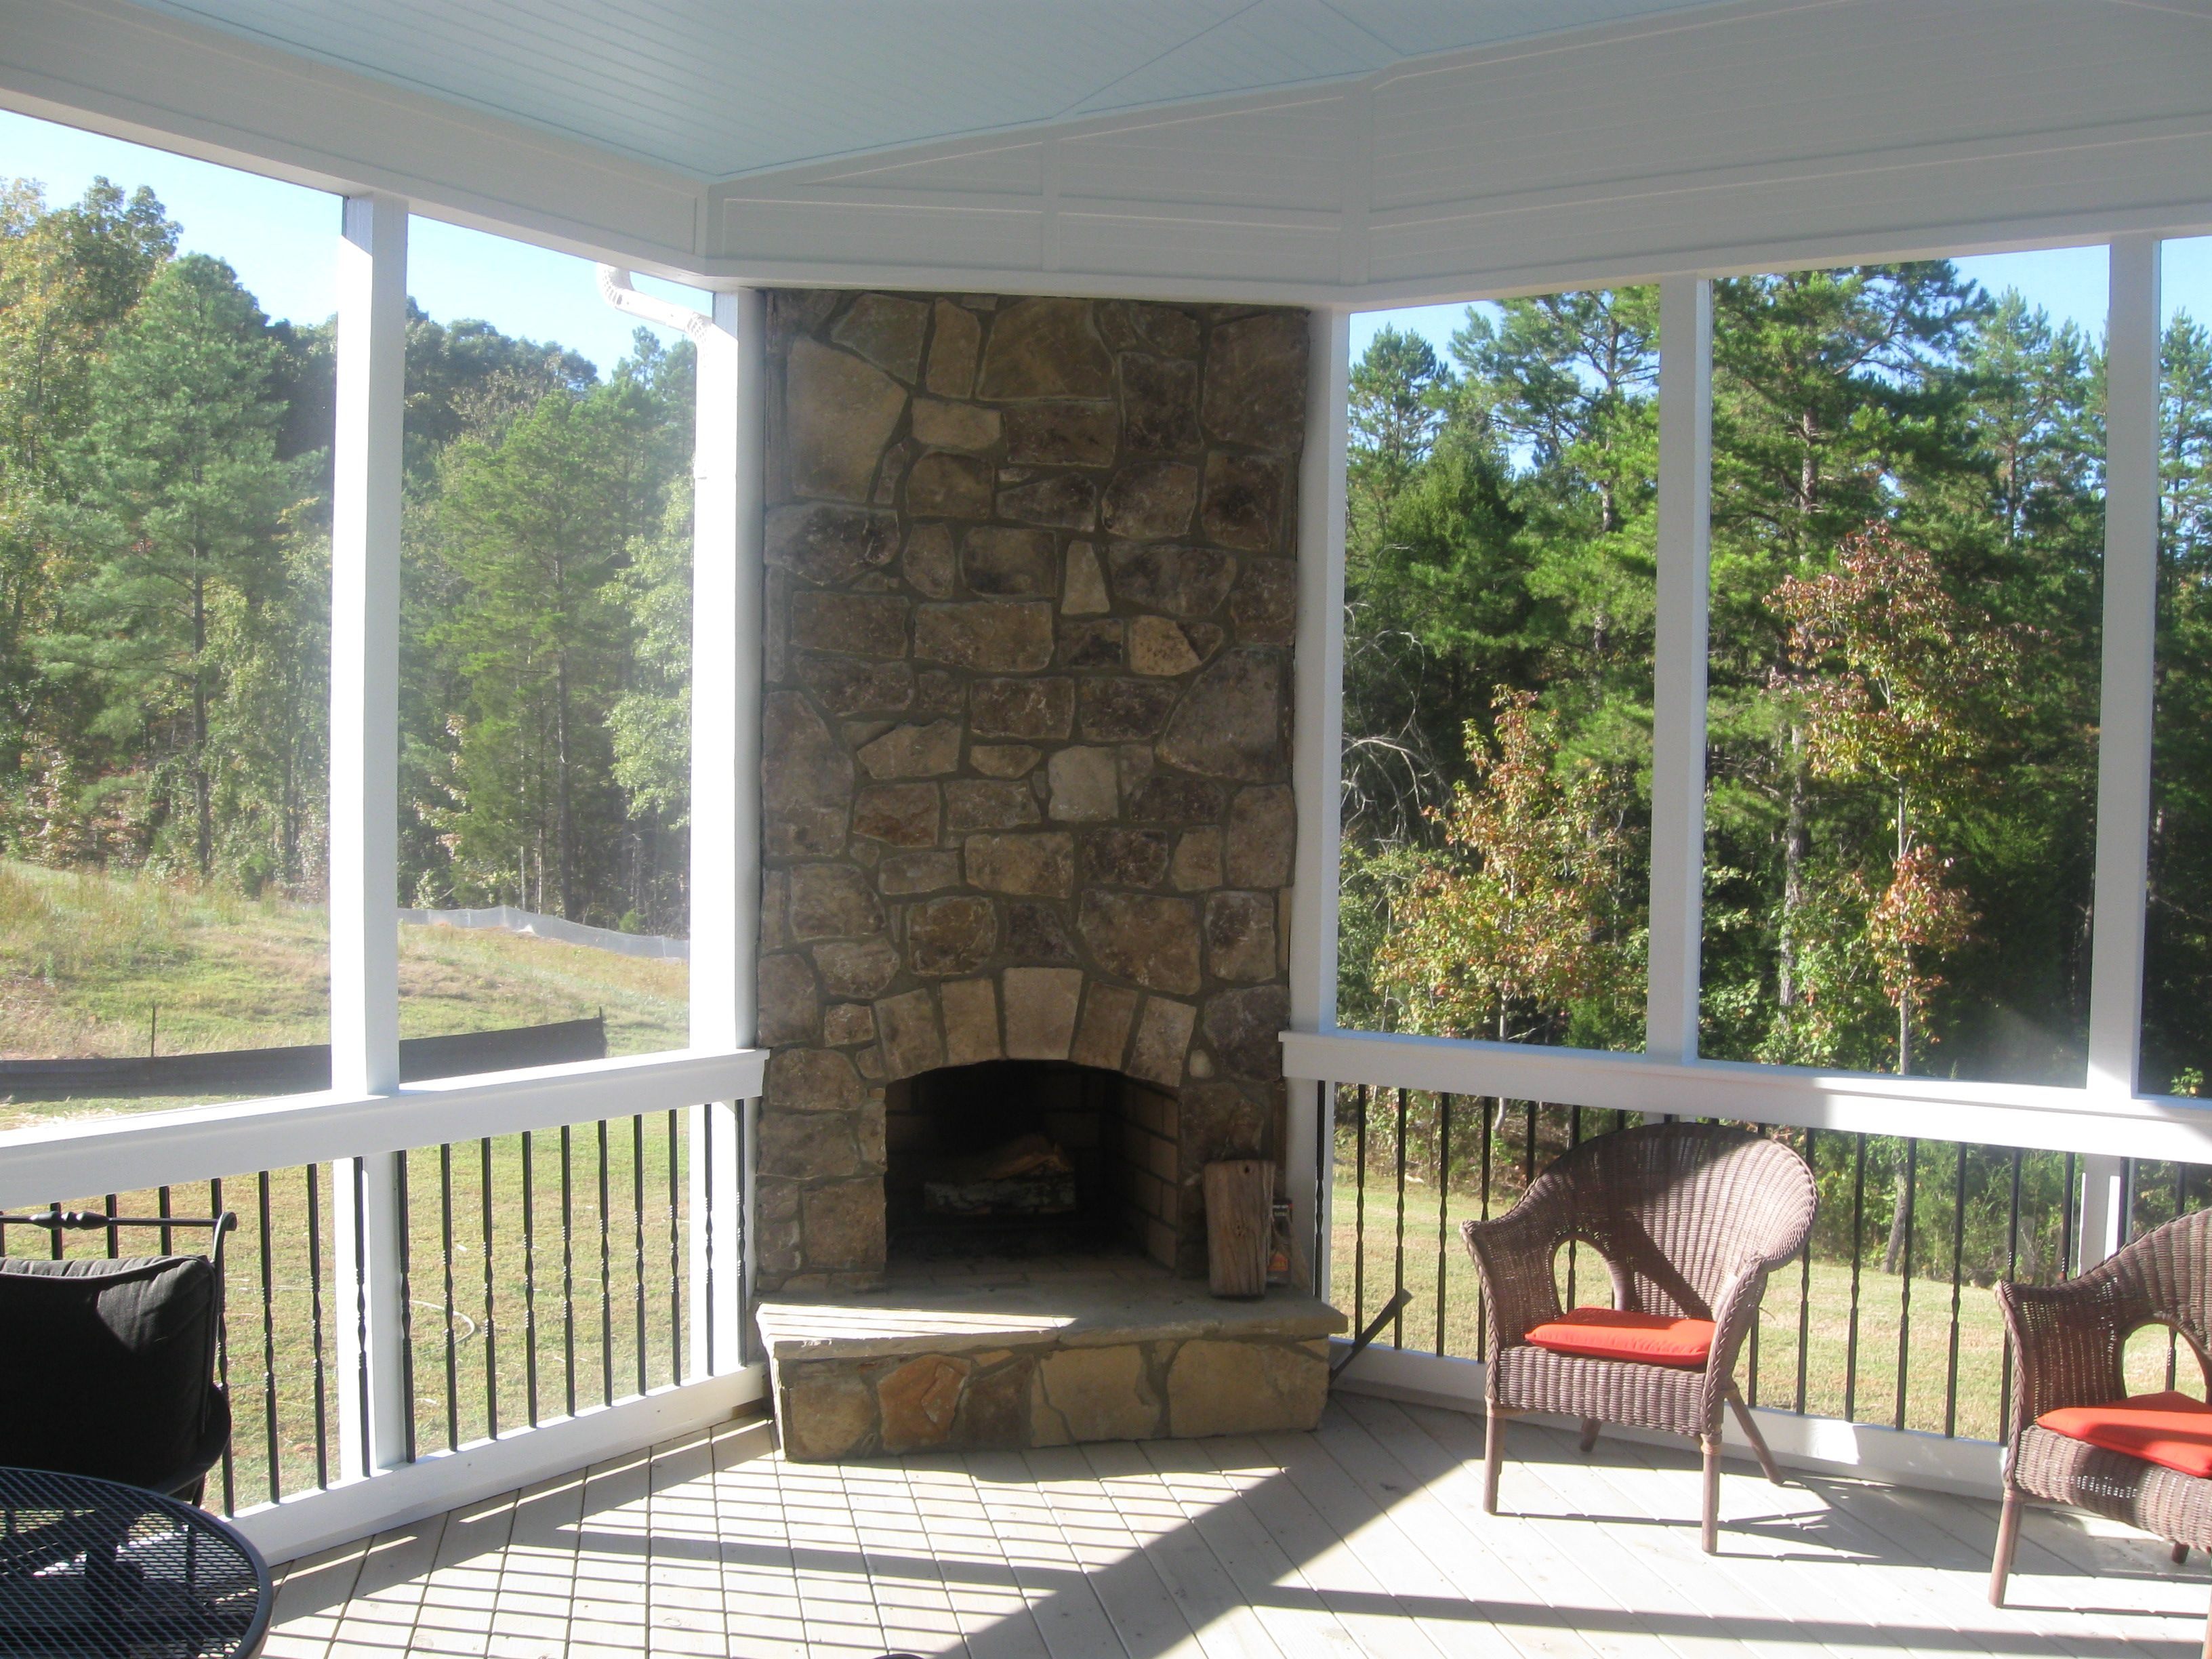 Sun porch design ideas outdoor fireplace integrated for Wood burning stove for screened porch